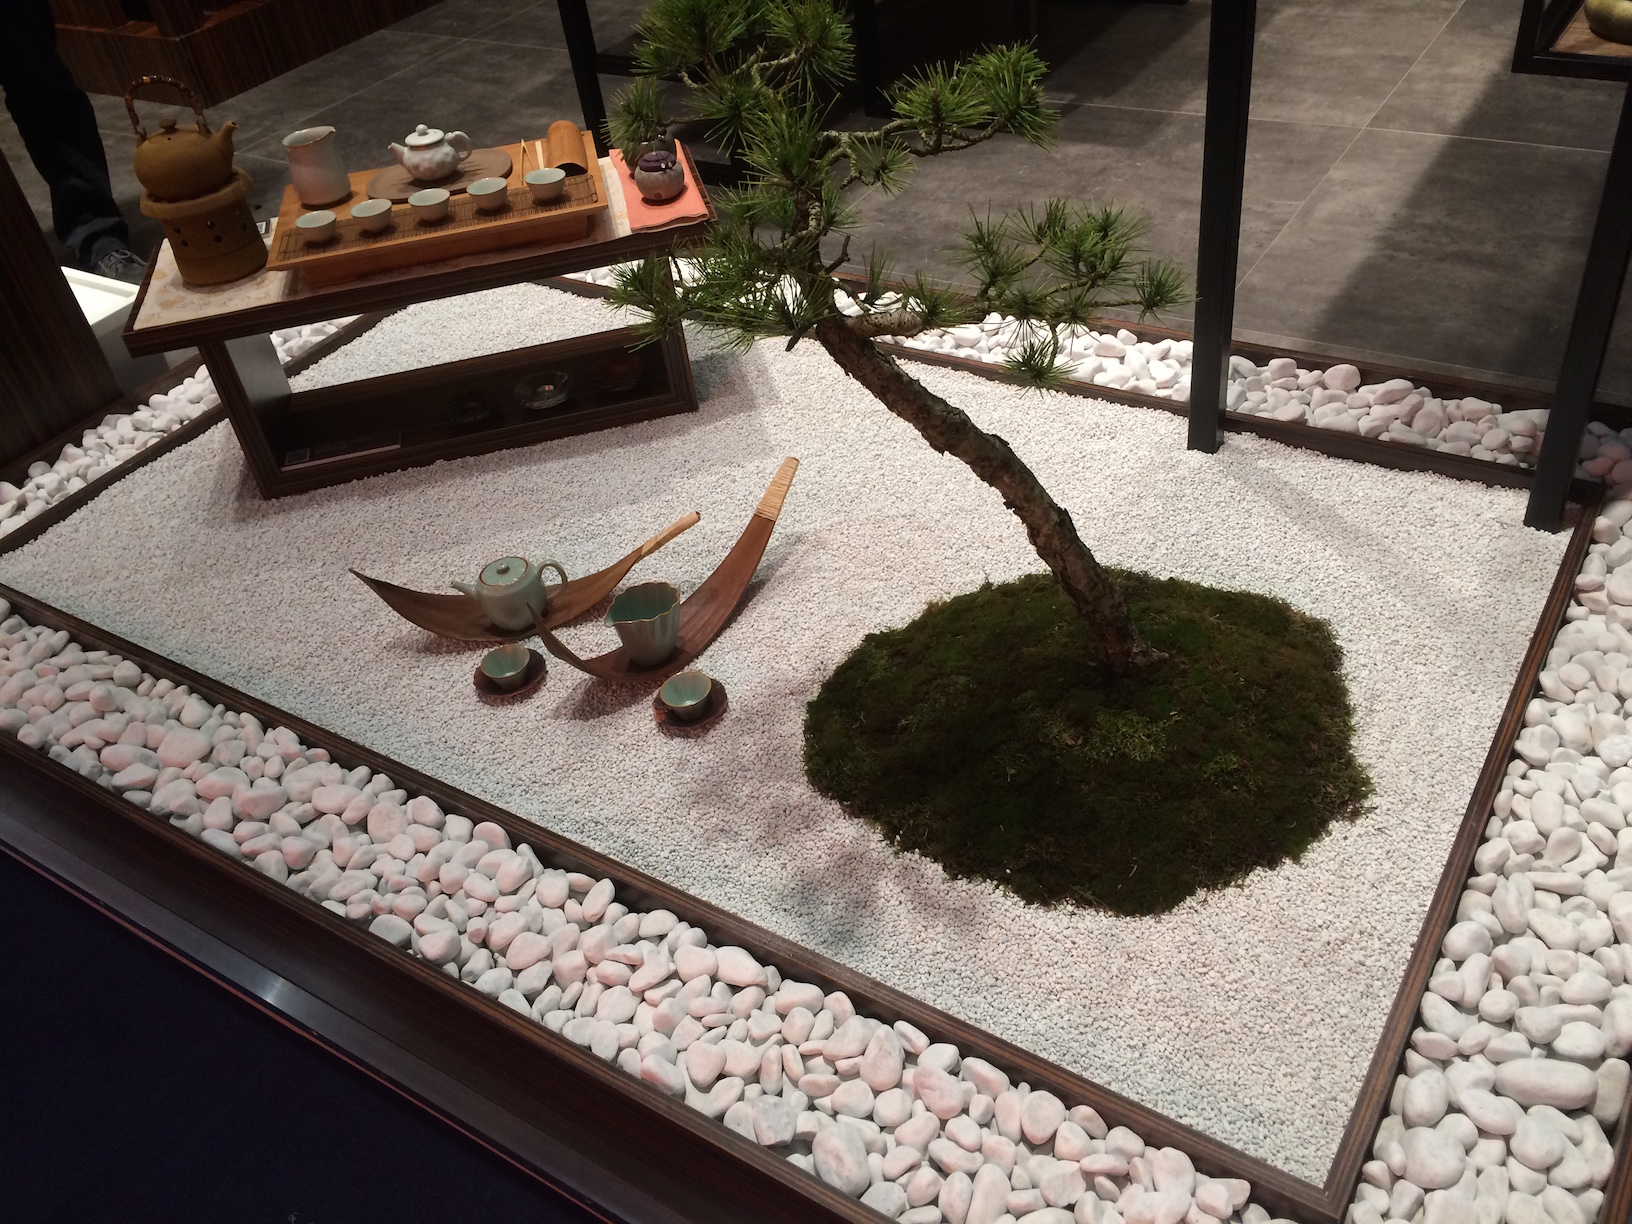 On y tait le salon des arts de la table de francfort for Idee deco jardin zen